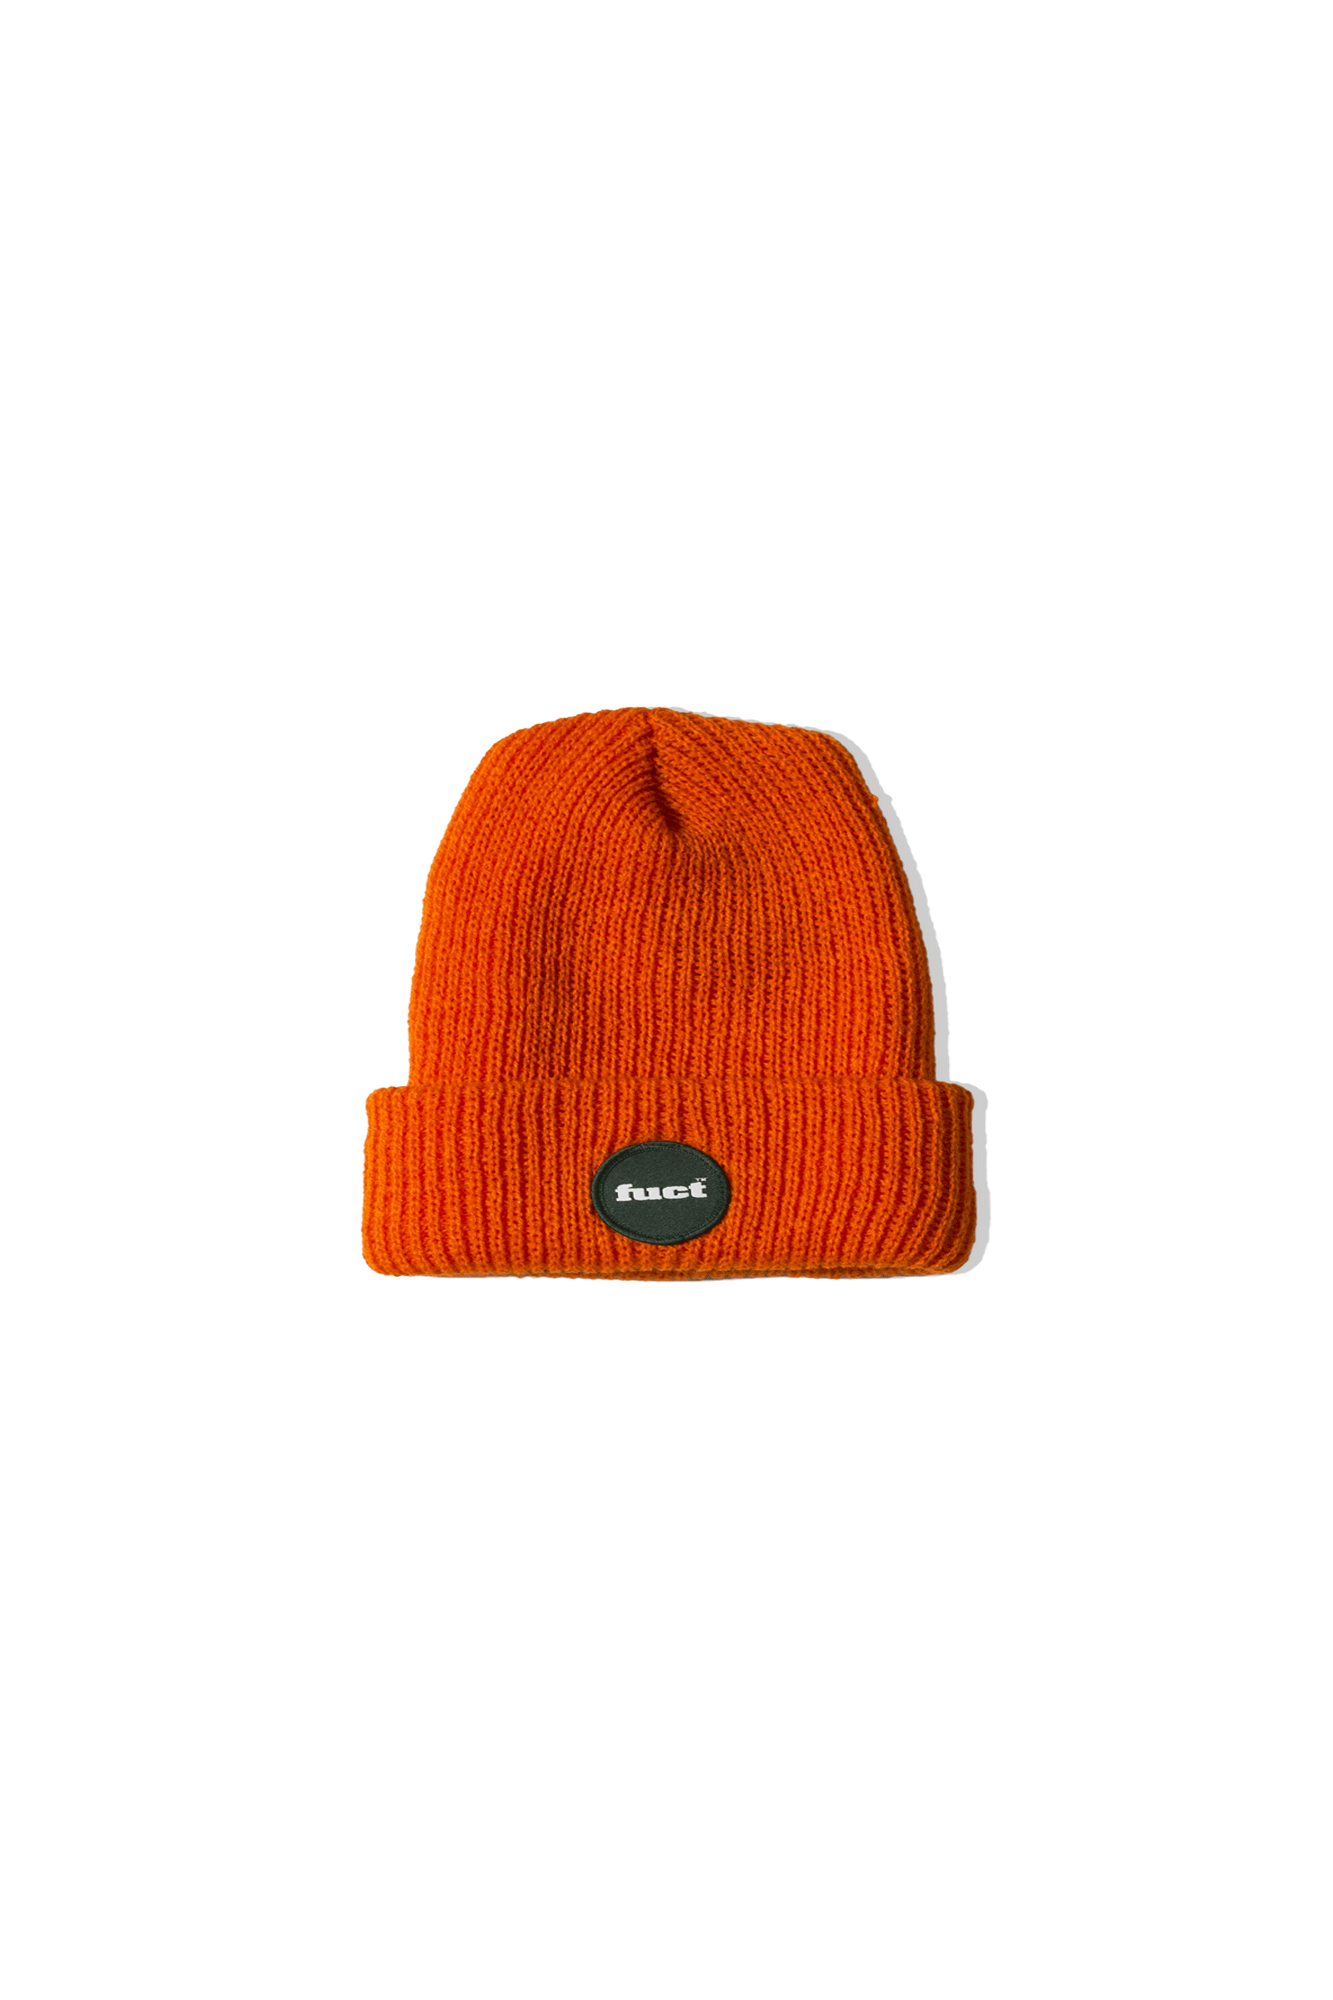 Fuct Hats CIRCLE LOGO BEANIE Orange FFA19024#000#ORNG#OS - One Block Down